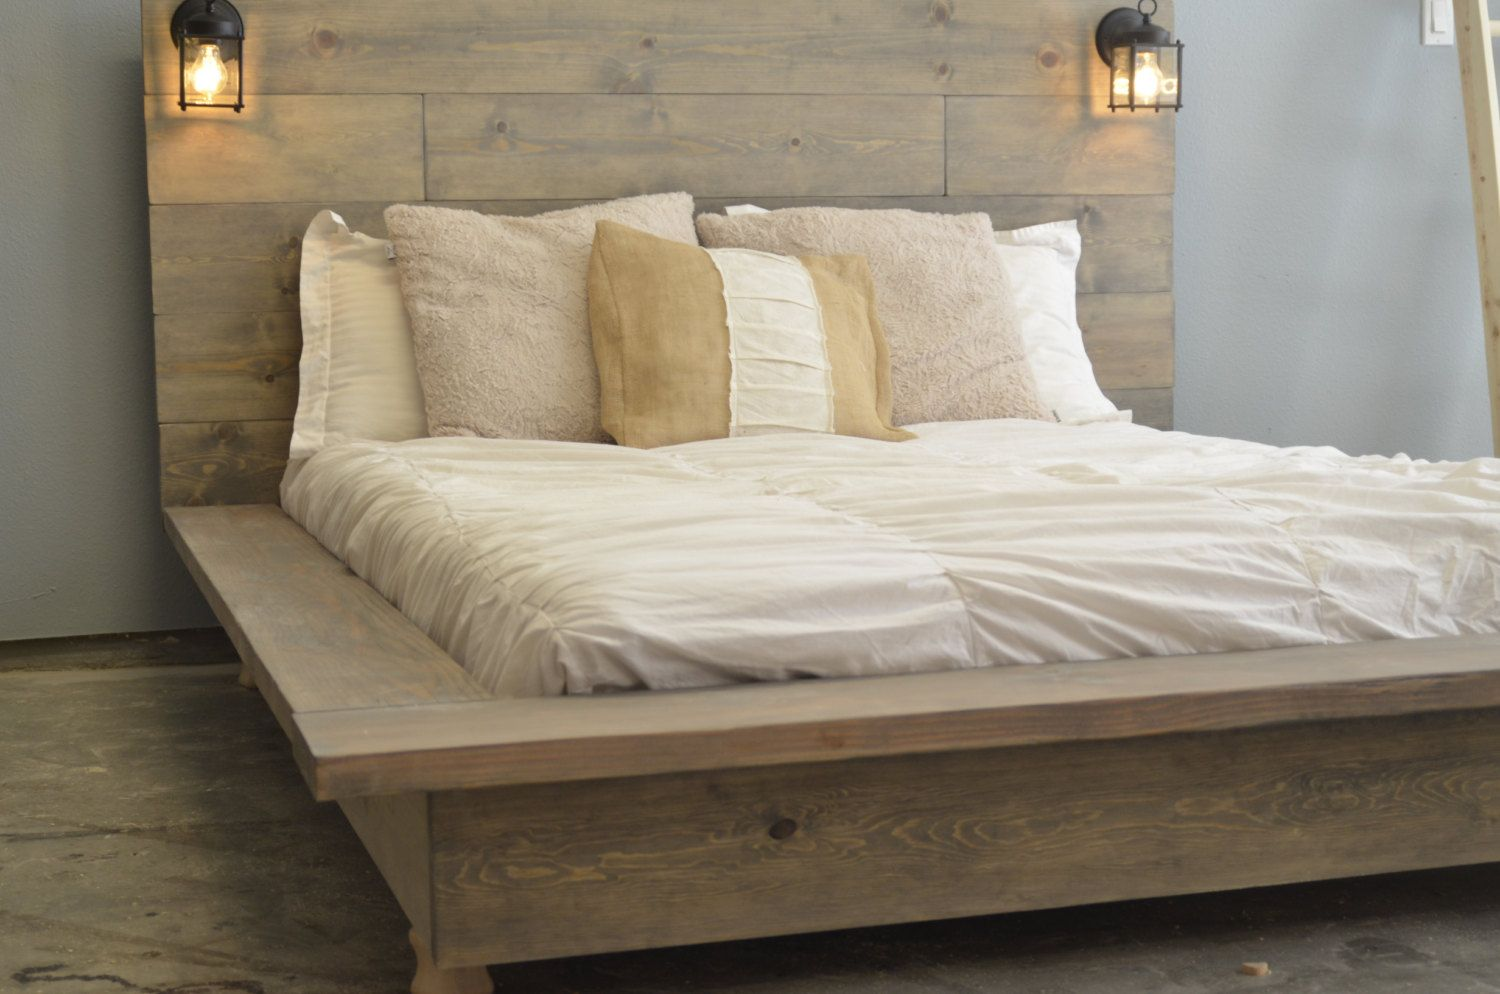 Floating Rustic Wood Platform Bedframe With By Knotsandbiscuits 965 00 Wood Platform Bed Frame Wood Platform Bed Floating Bed Frame